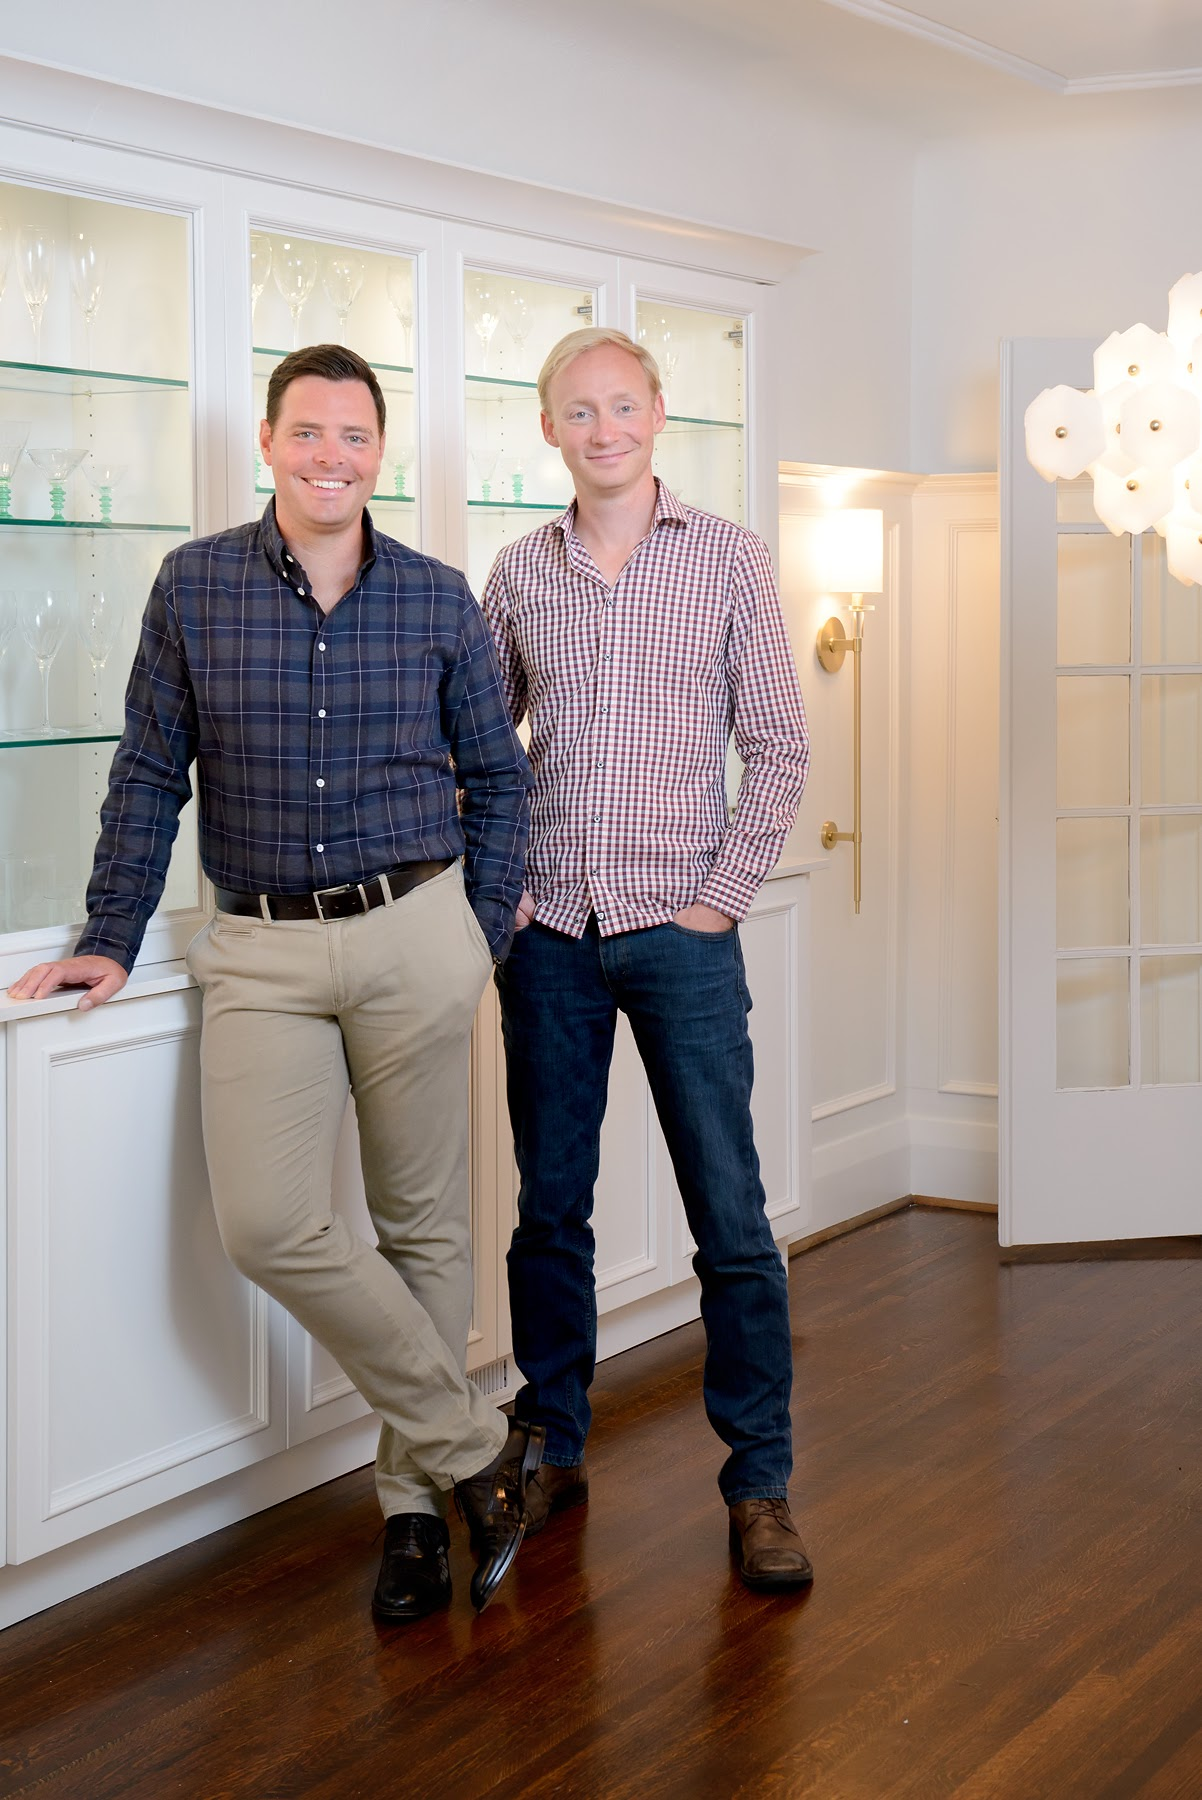 Welcome to Home by Tim + Chris - We are a full service design firm,located in the Kawartha Lakes, and with a focus on interior design, kitchens, bathrooms, custom closets, built-ins and decor. We can help from the design phase through to the installation and decorate phase.We have been designing dream homes for the past 15 years and would love to take your concept from design to built and decorated.With Home by Tim + Chris, you won't have to leave your office to bring your project to life. Thanks to our network in Toronto and the Kawarthas, we can spend time in the city finding the right fixtures for your cottage or home, and then with our project management and construction experience we will ensure that your project gets installed with little impact on your time and with careful consideration of your budget. We take great pride in our ability to help our clients realize their dream project.